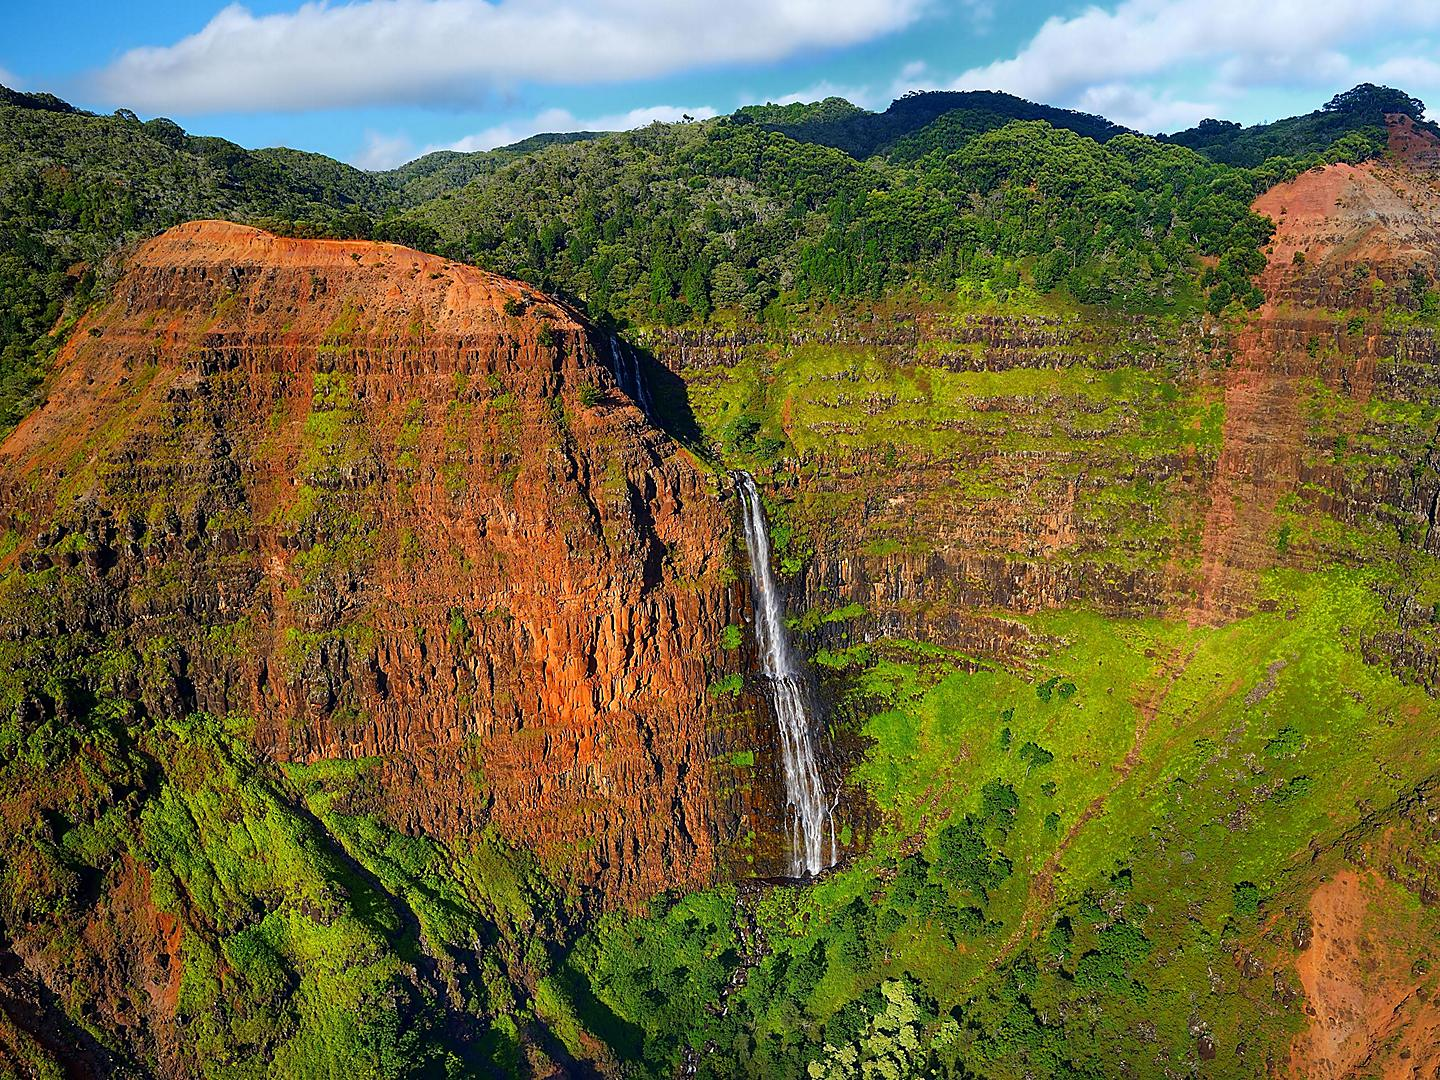 Kauai, Hawaii Canyon Aerial View